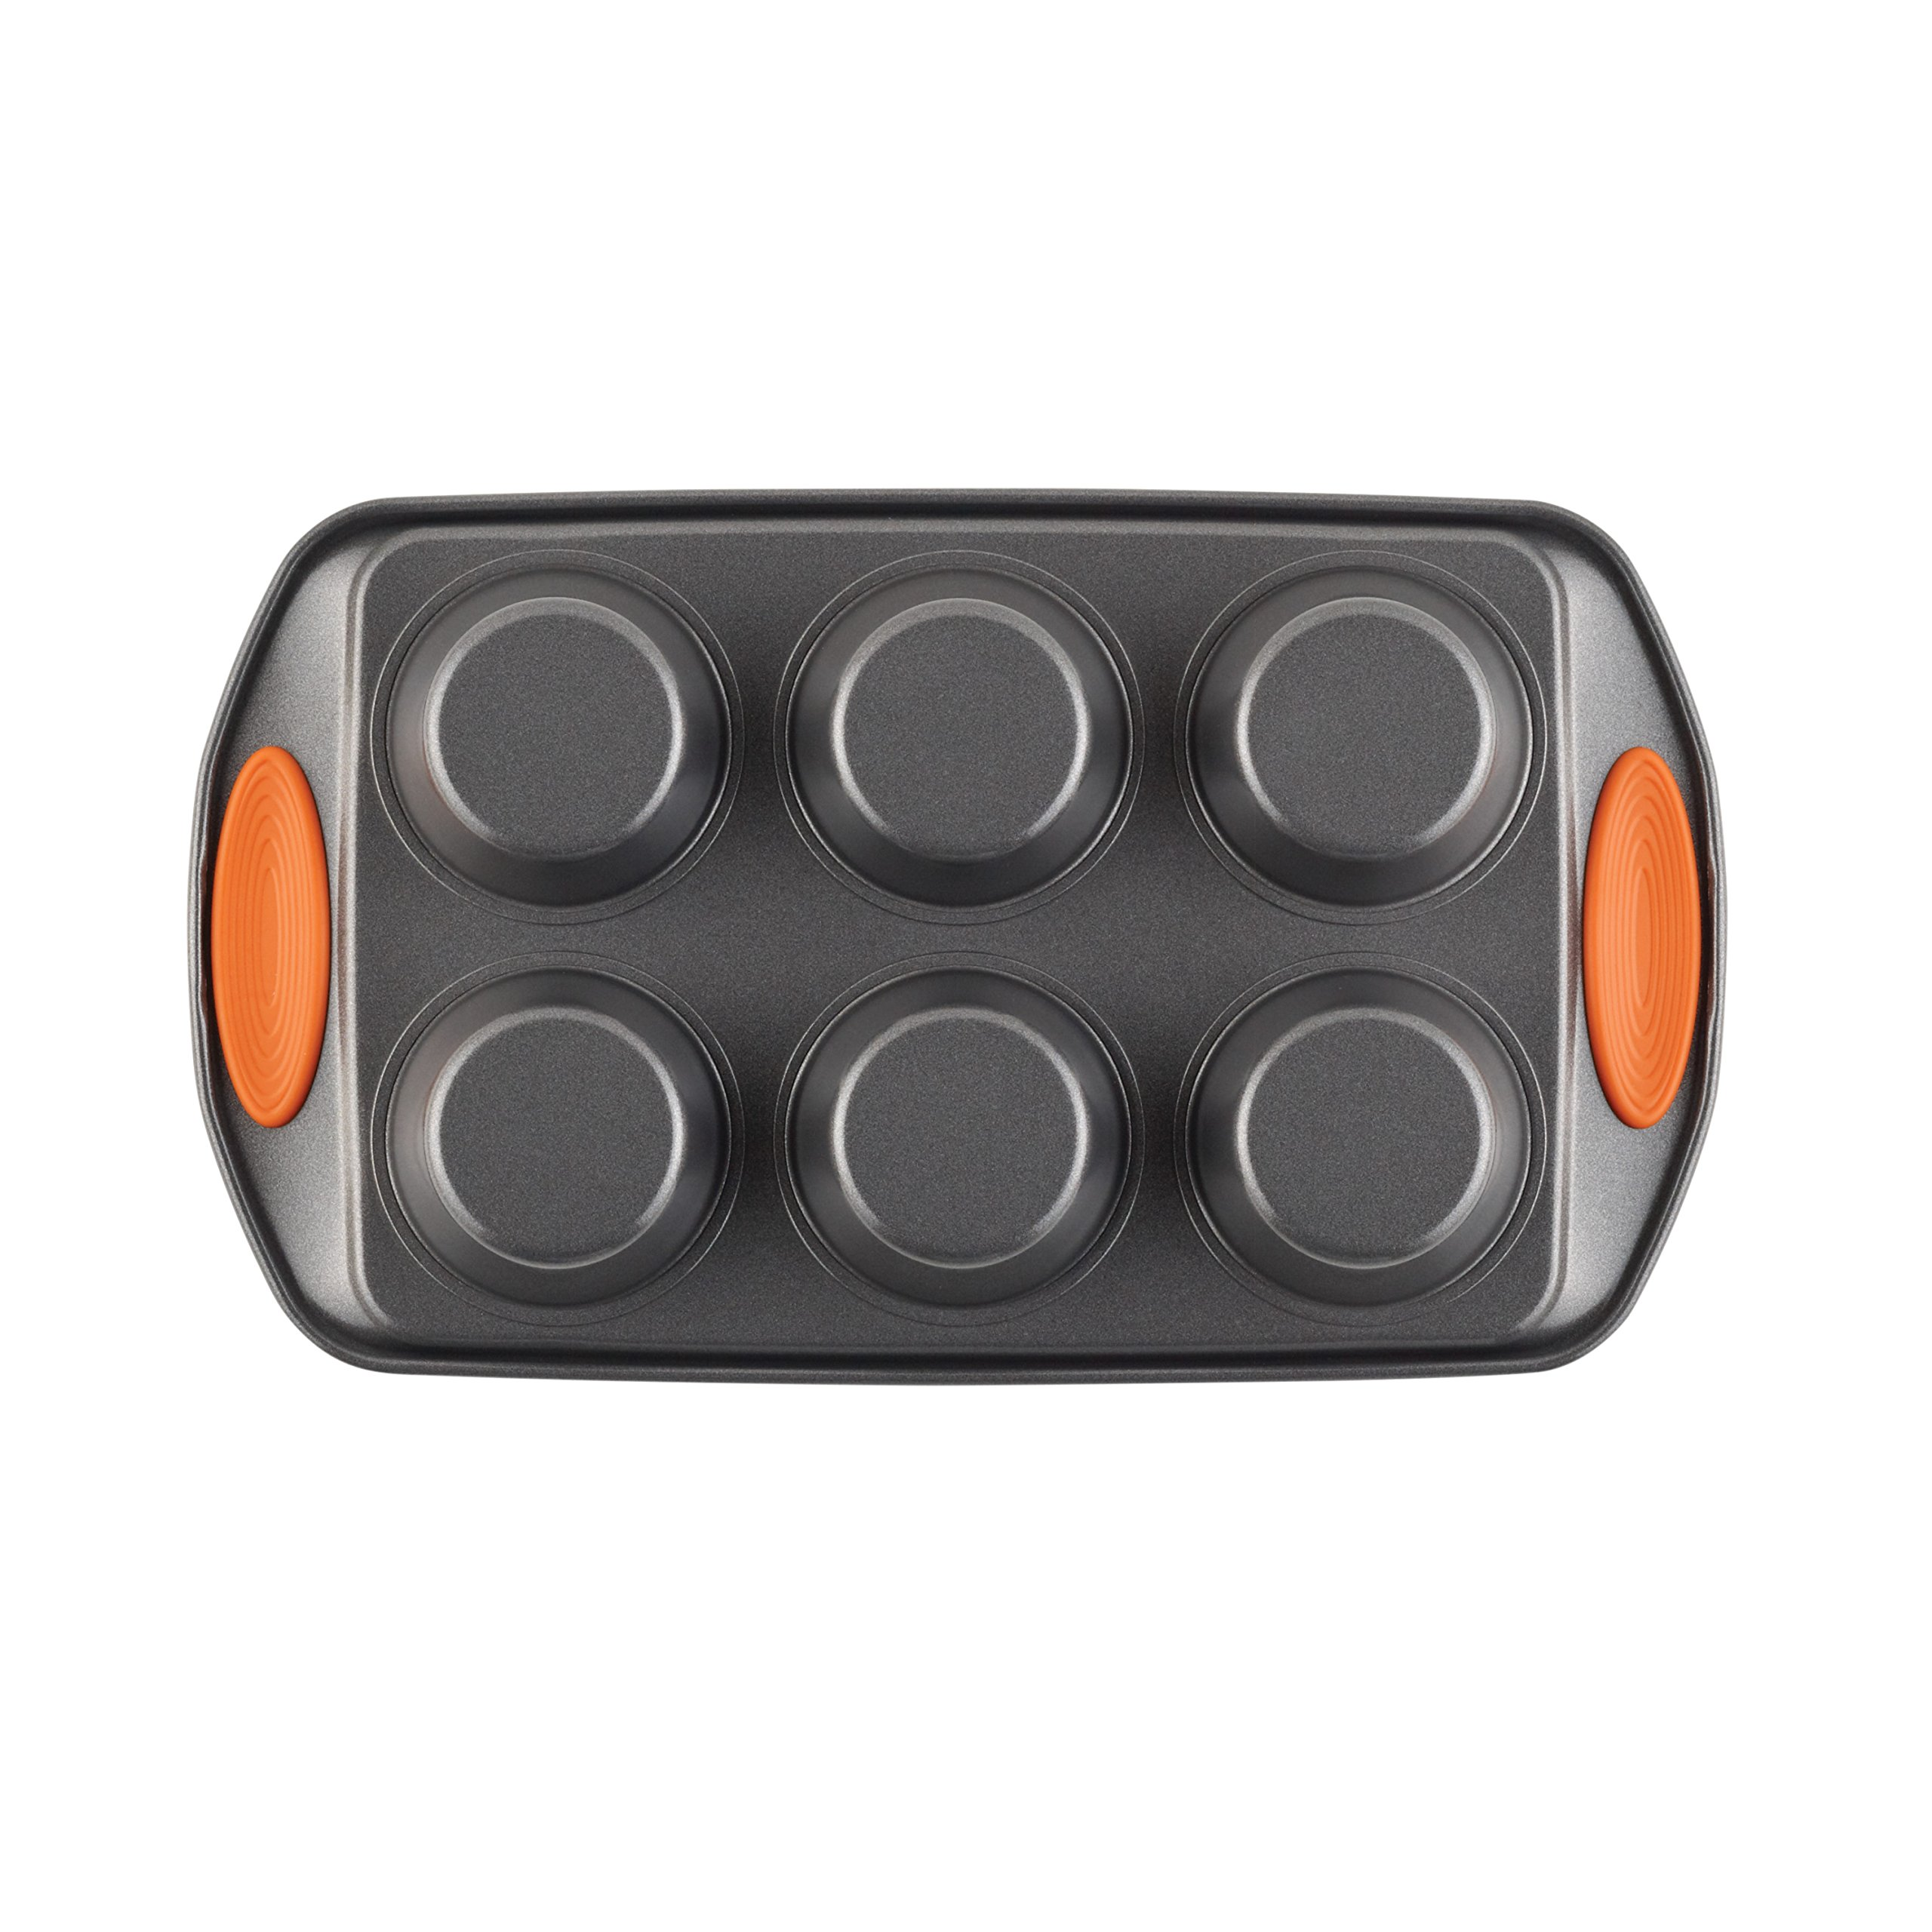 Rachael Ray Yum-o! Nonstick Bakeware 6-Cup Oven Lovin' Cups Muffin Pan, Gray with Orange Handles